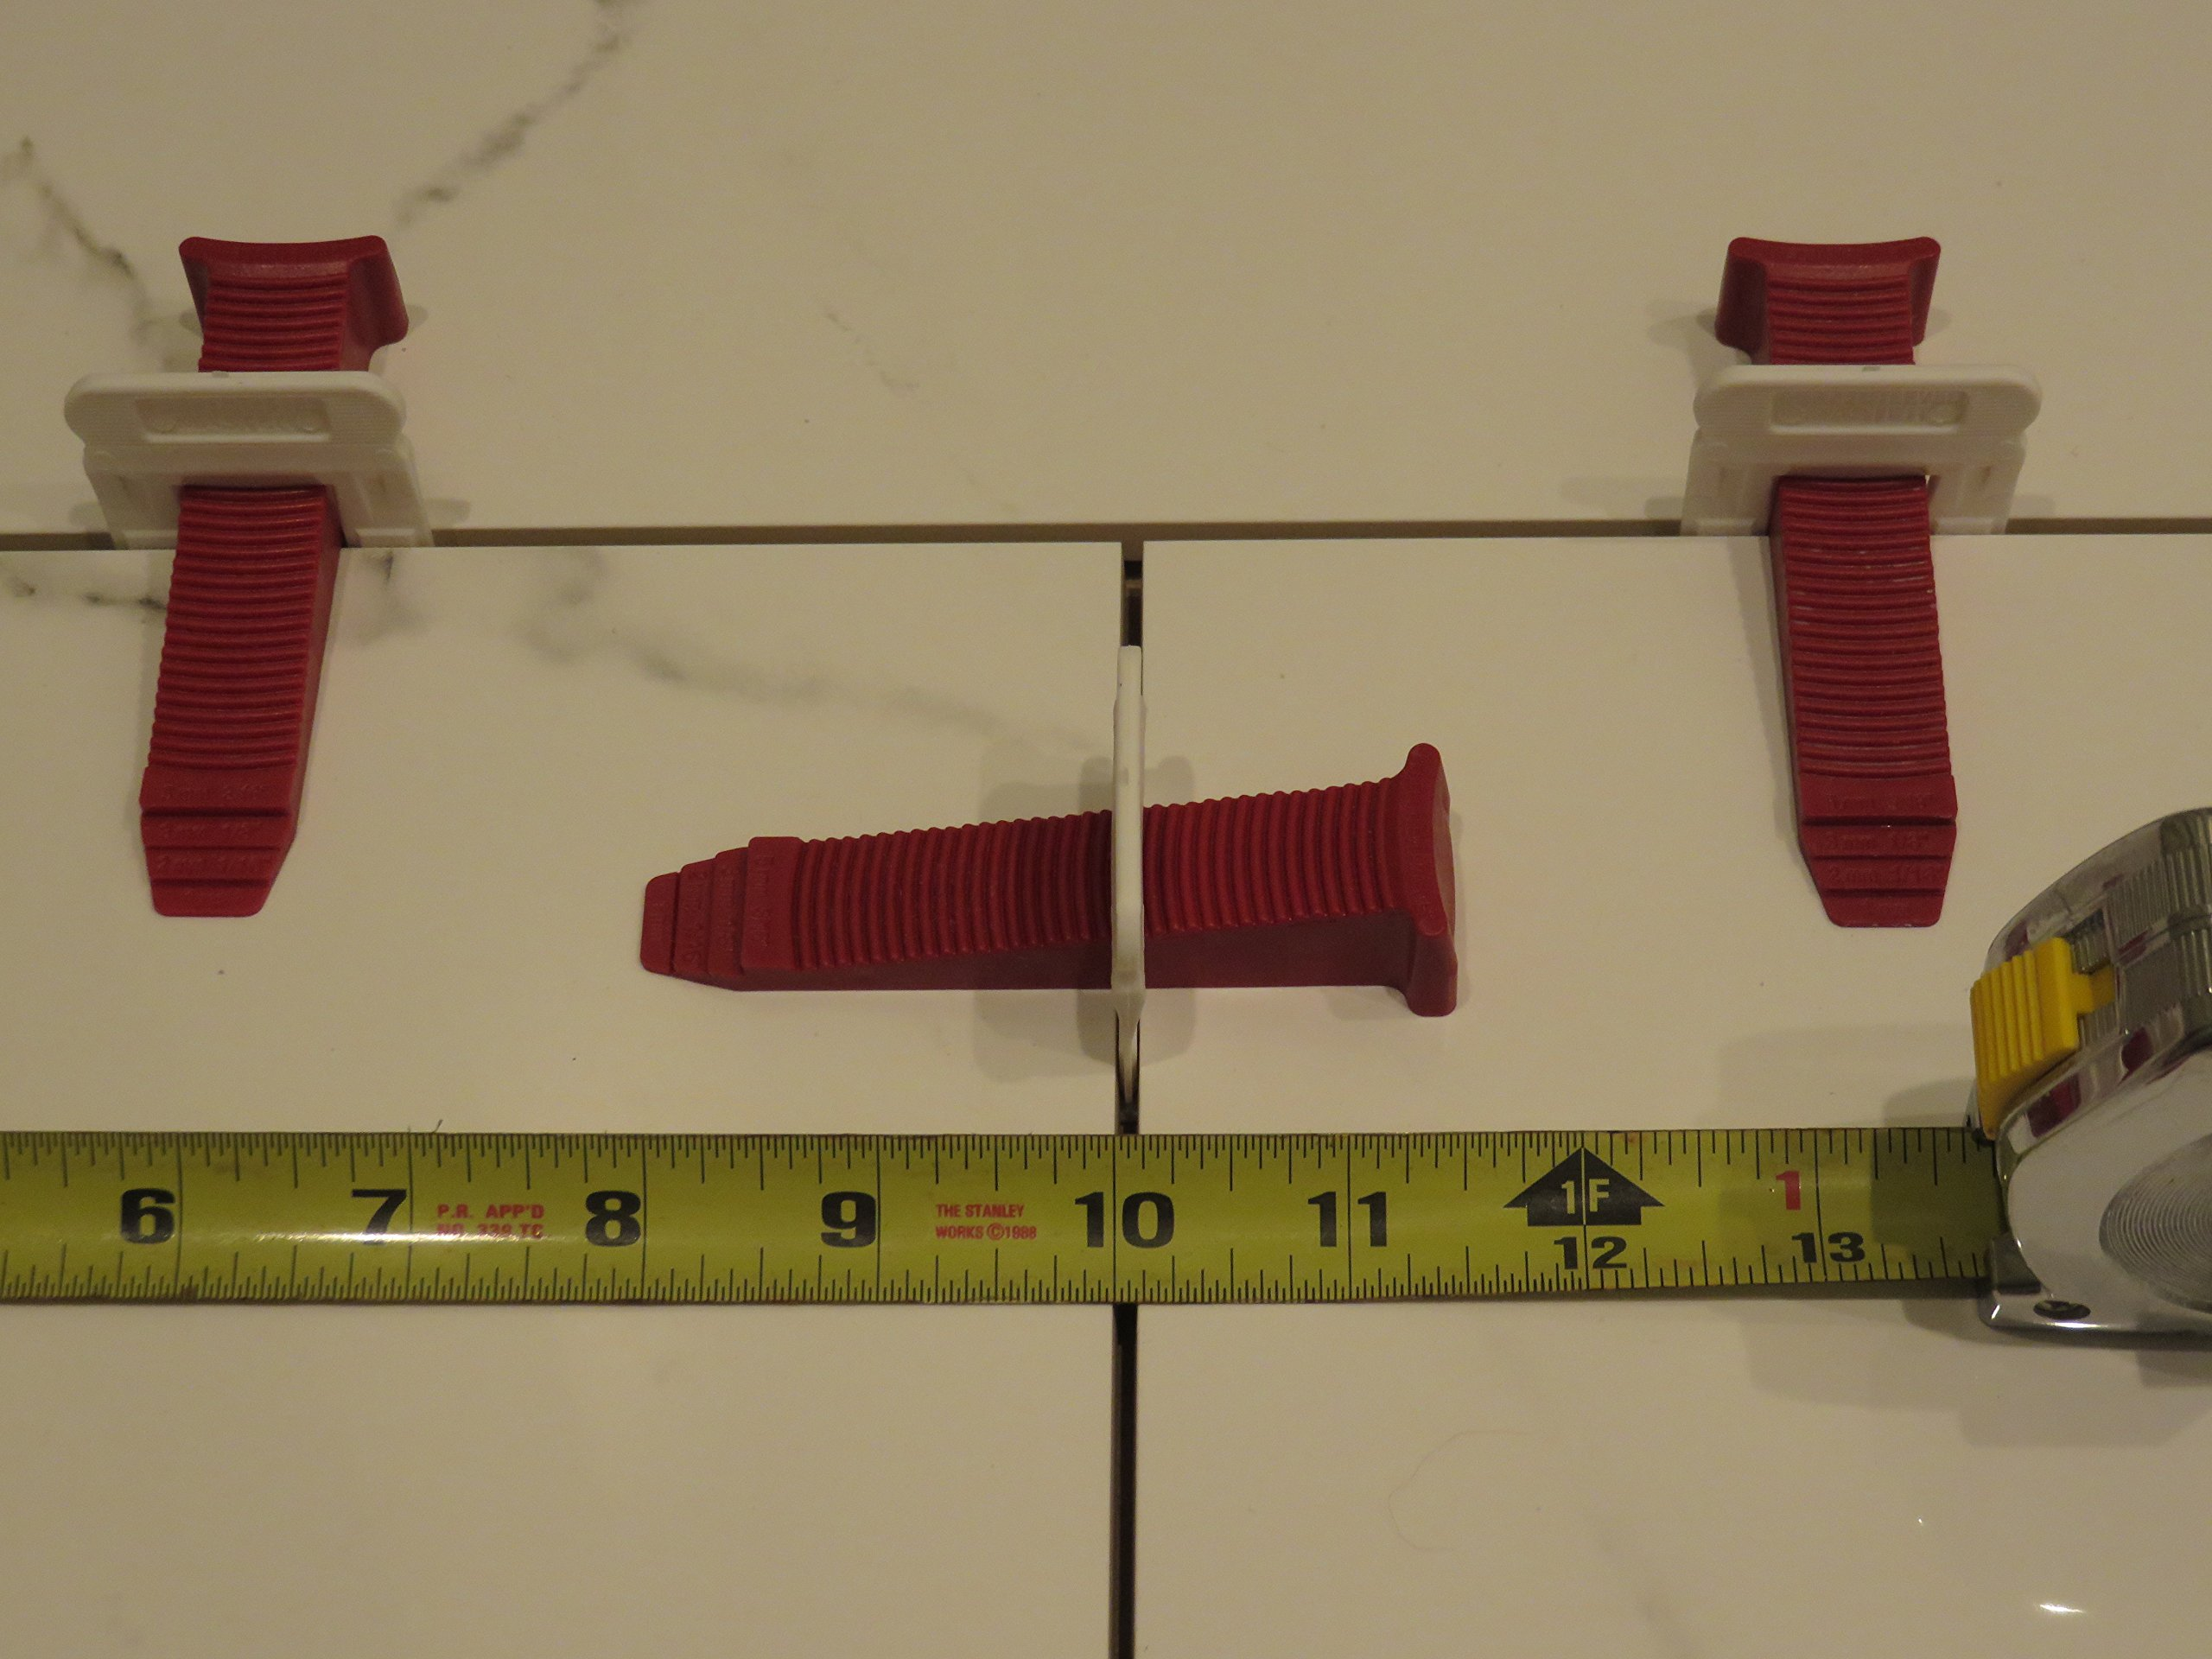 T-Lock ™ 1/16'' (2mm) 100 Clips '' PERFECT LEVEL MASTER ™ Professional '' Anti lippage '' Tile leveling system - (spacers only), Red wedges not included and sold separately! by Perfect Level Master ™ (Image #5)